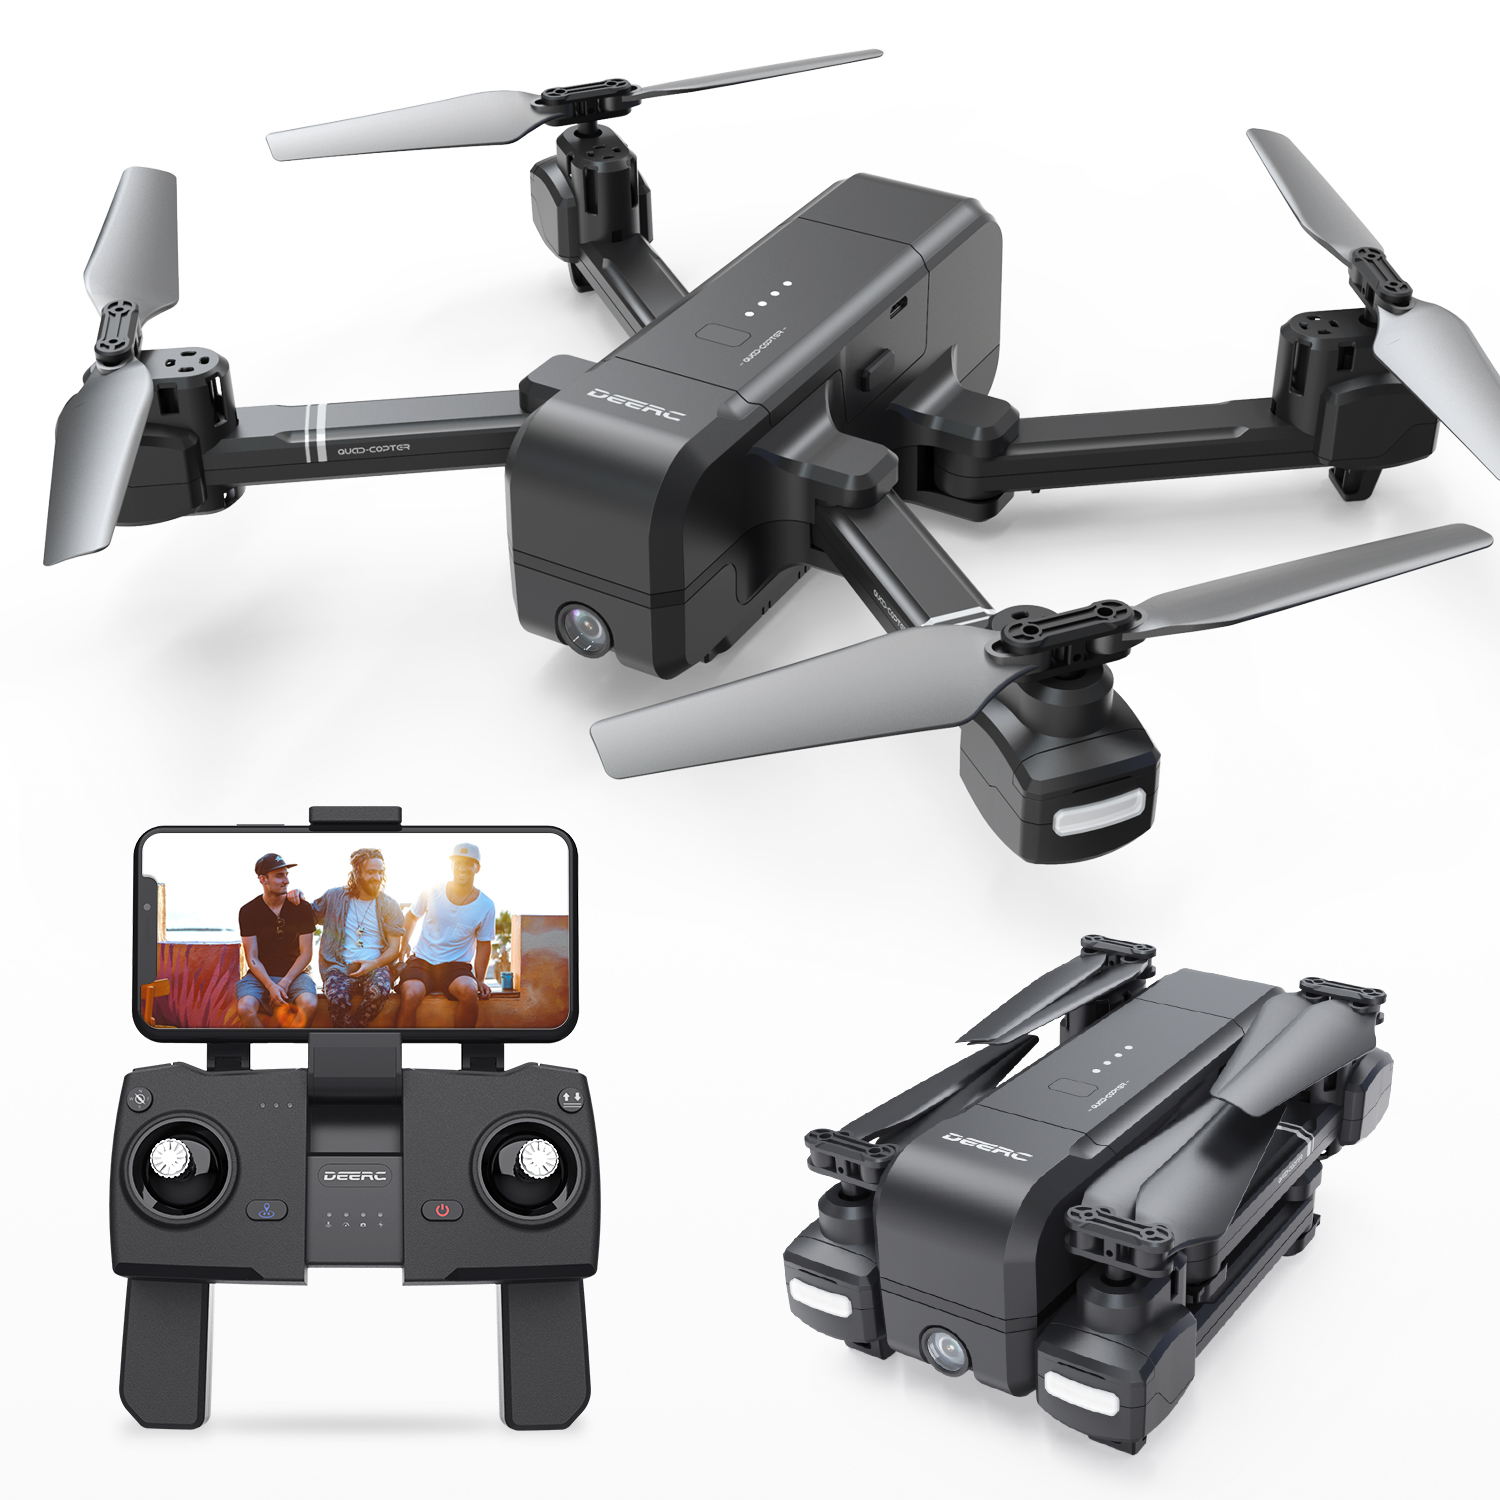 DEERC DE25 1080P FPV Wifi GPS Drone Foldable and Portable Tapfly Active Track 18 Min Flight